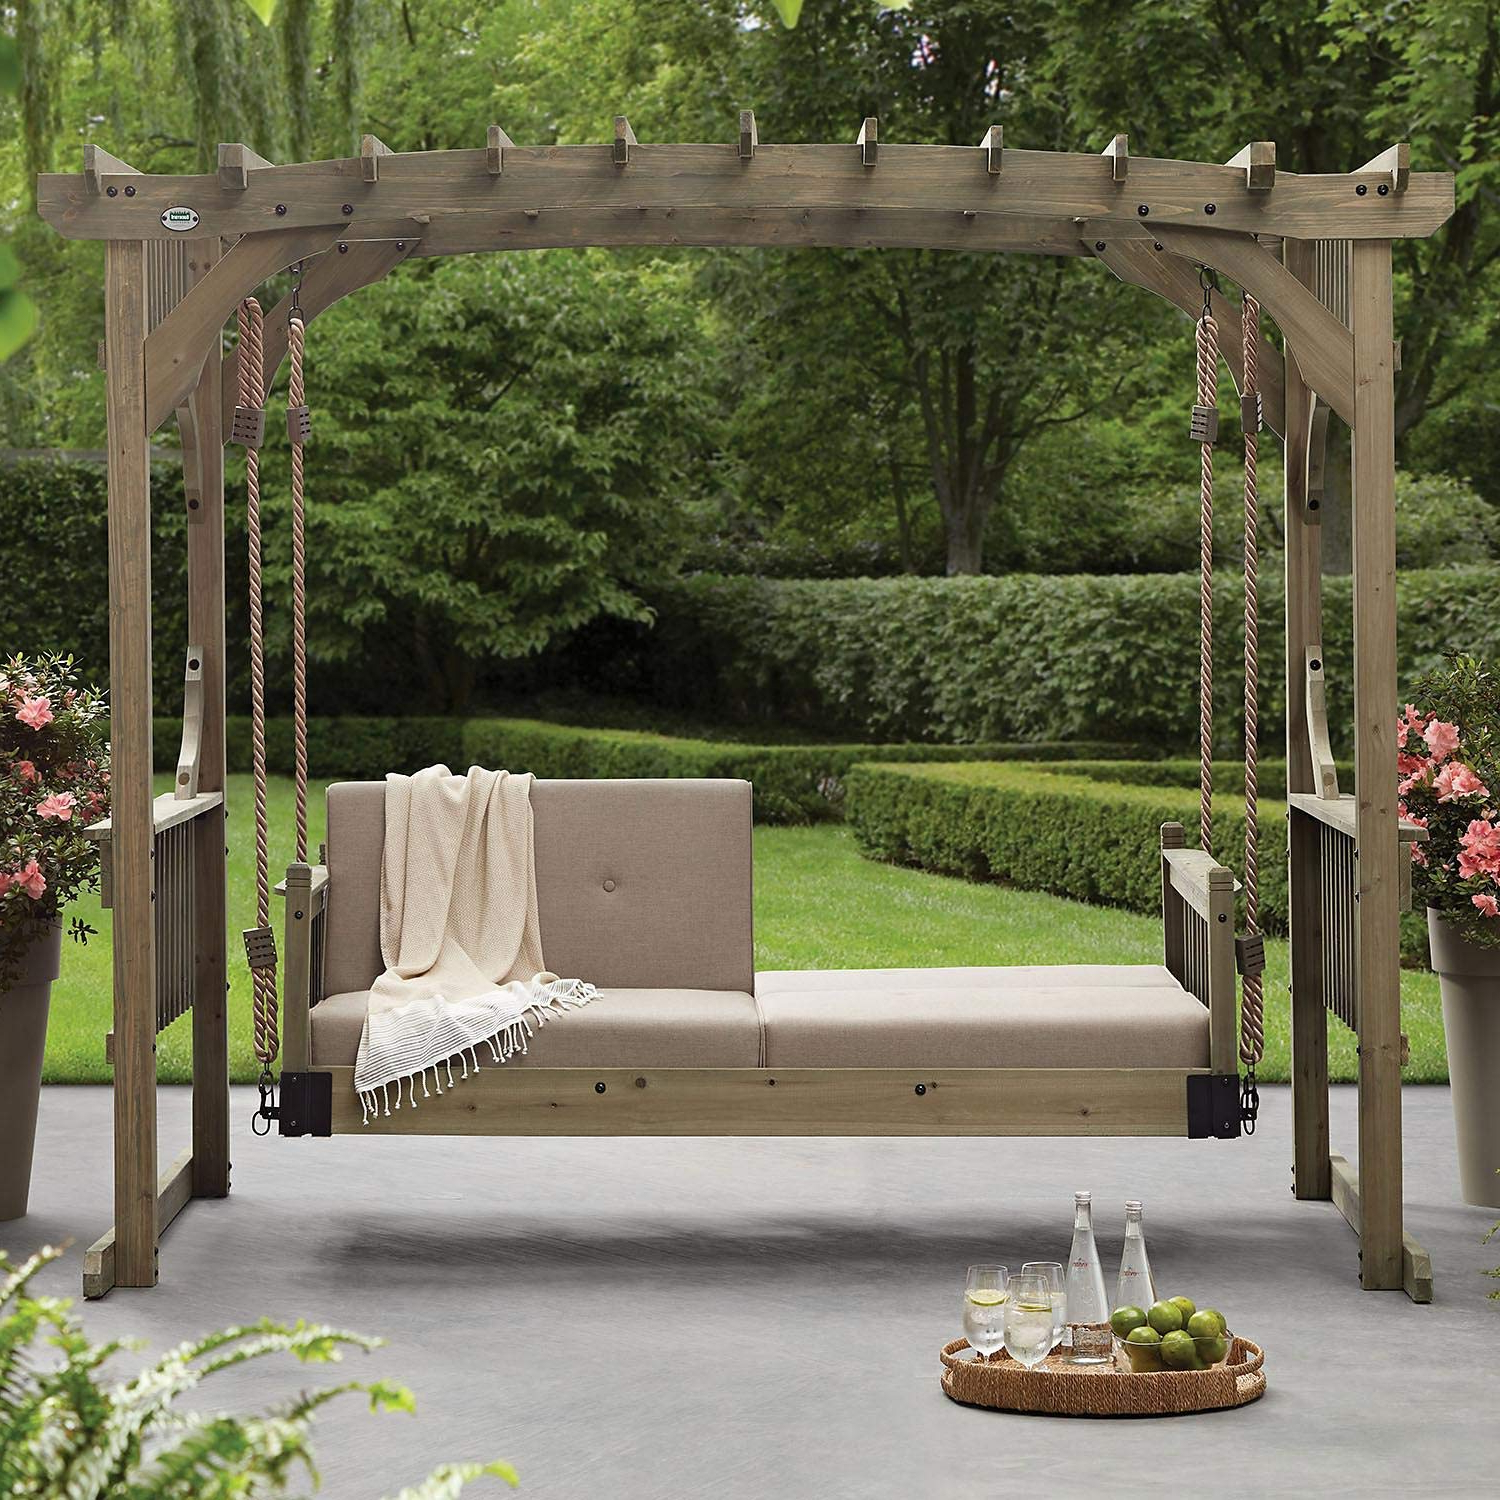 Amazon: Sunbrella Luxury Patio Hanging Swing Lounger Throughout Most Recent 3 Seat Pergola Swings (View 28 of 30)